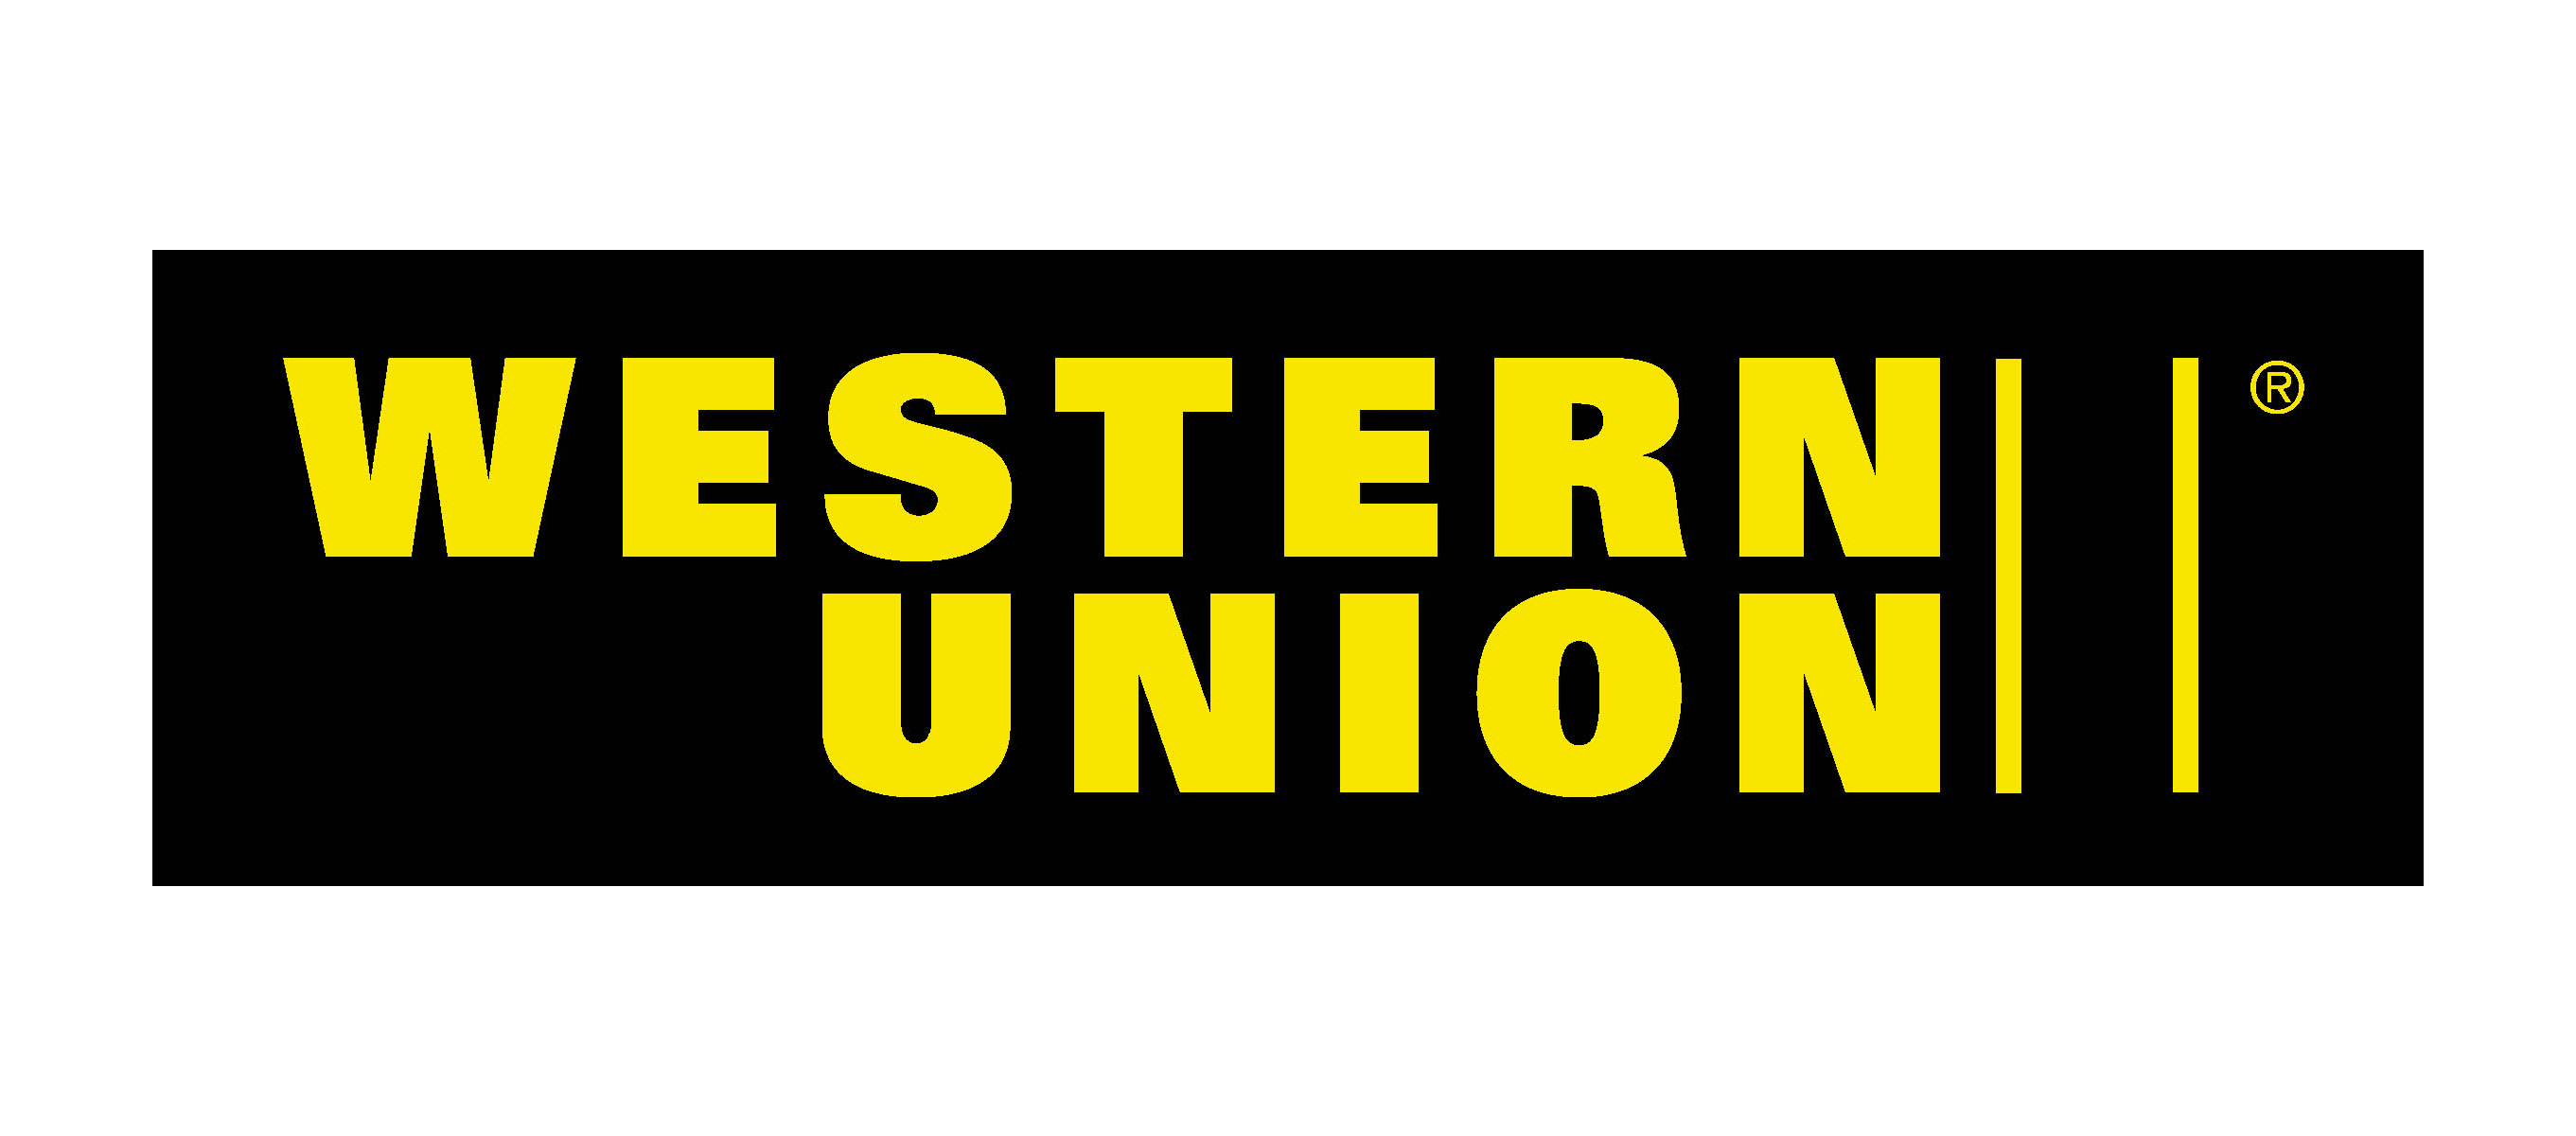 Western Union Announces Agreements With U.S. Investigations on Anti-fraud Program